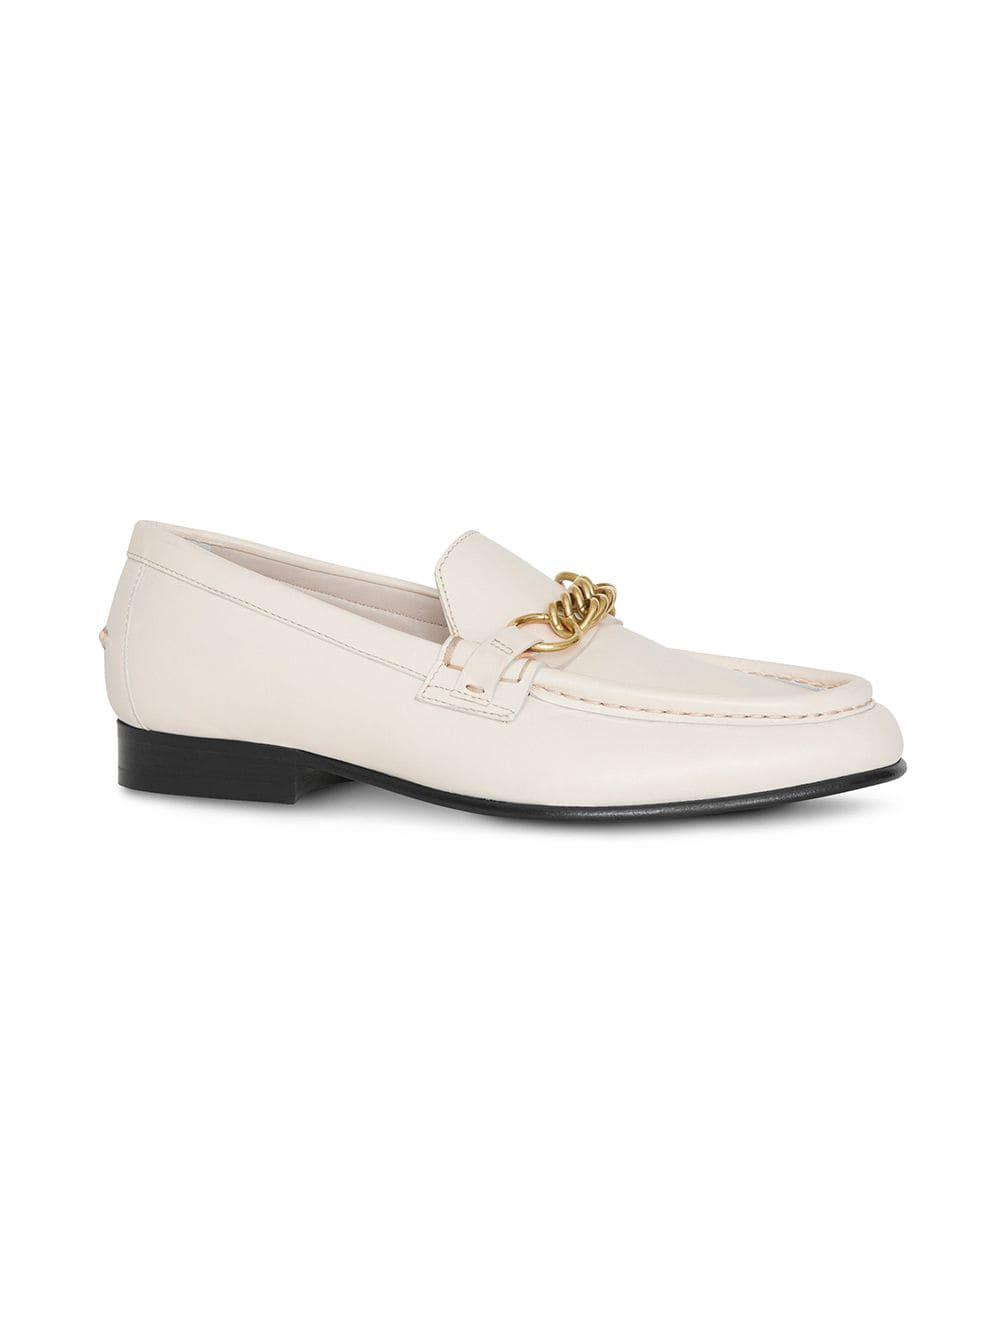 7f465b4e4fc Burberry - White The Leather Link Loafer - Lyst. View fullscreen